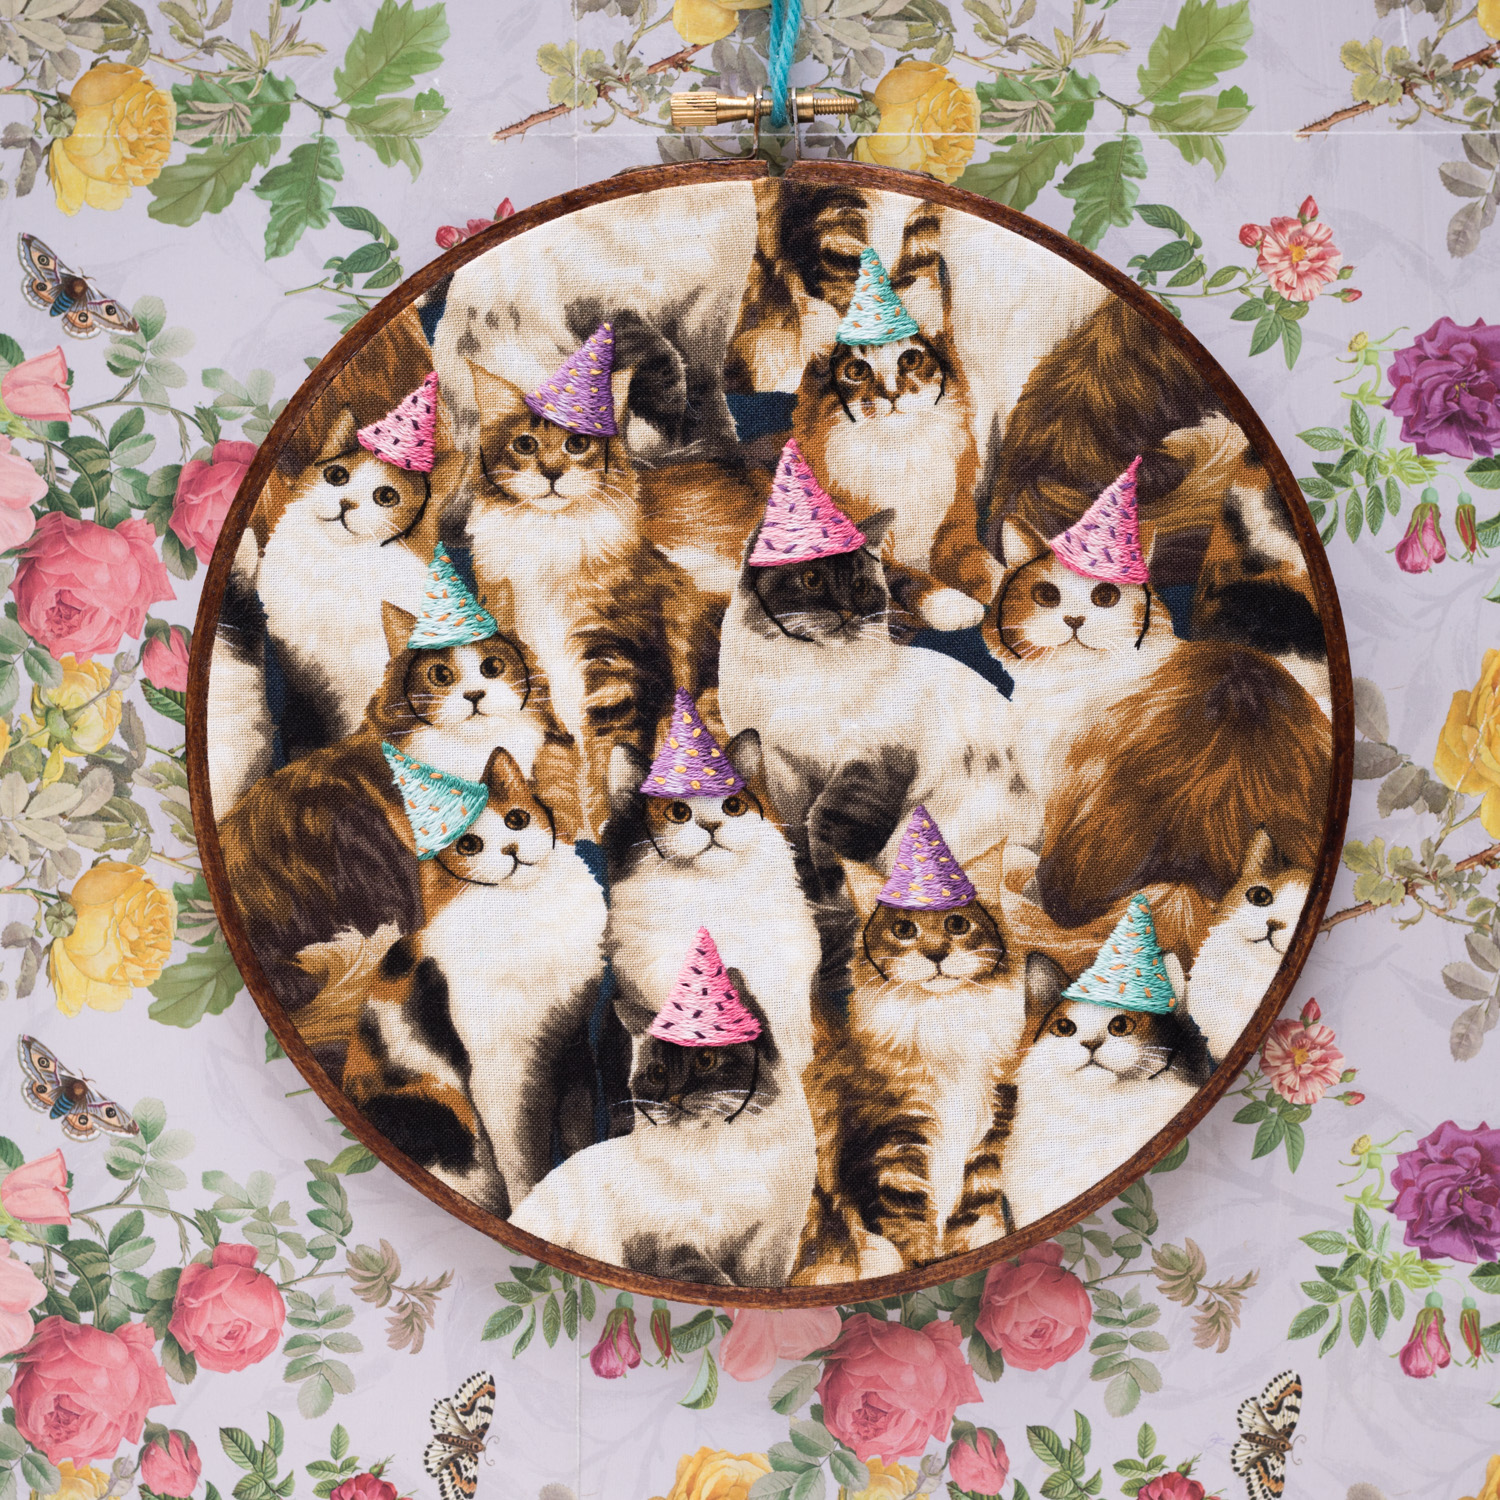 Cats with party hats on